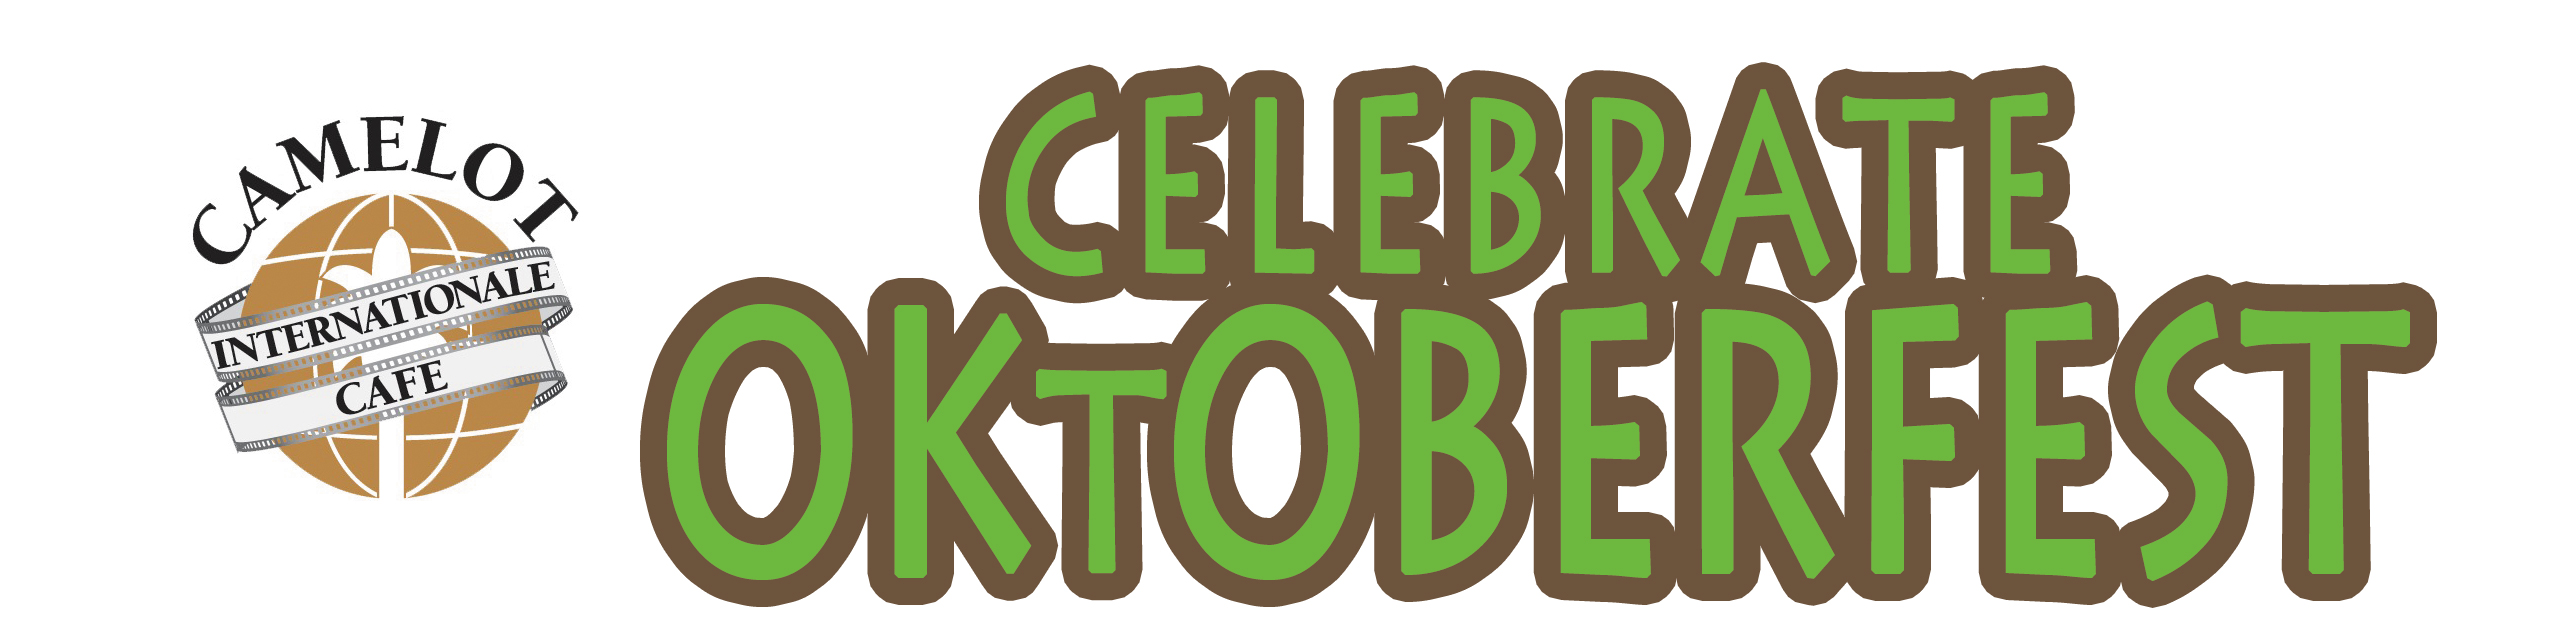 Tickets for OktoberFest Celebration in Palm Springs from ShowClix